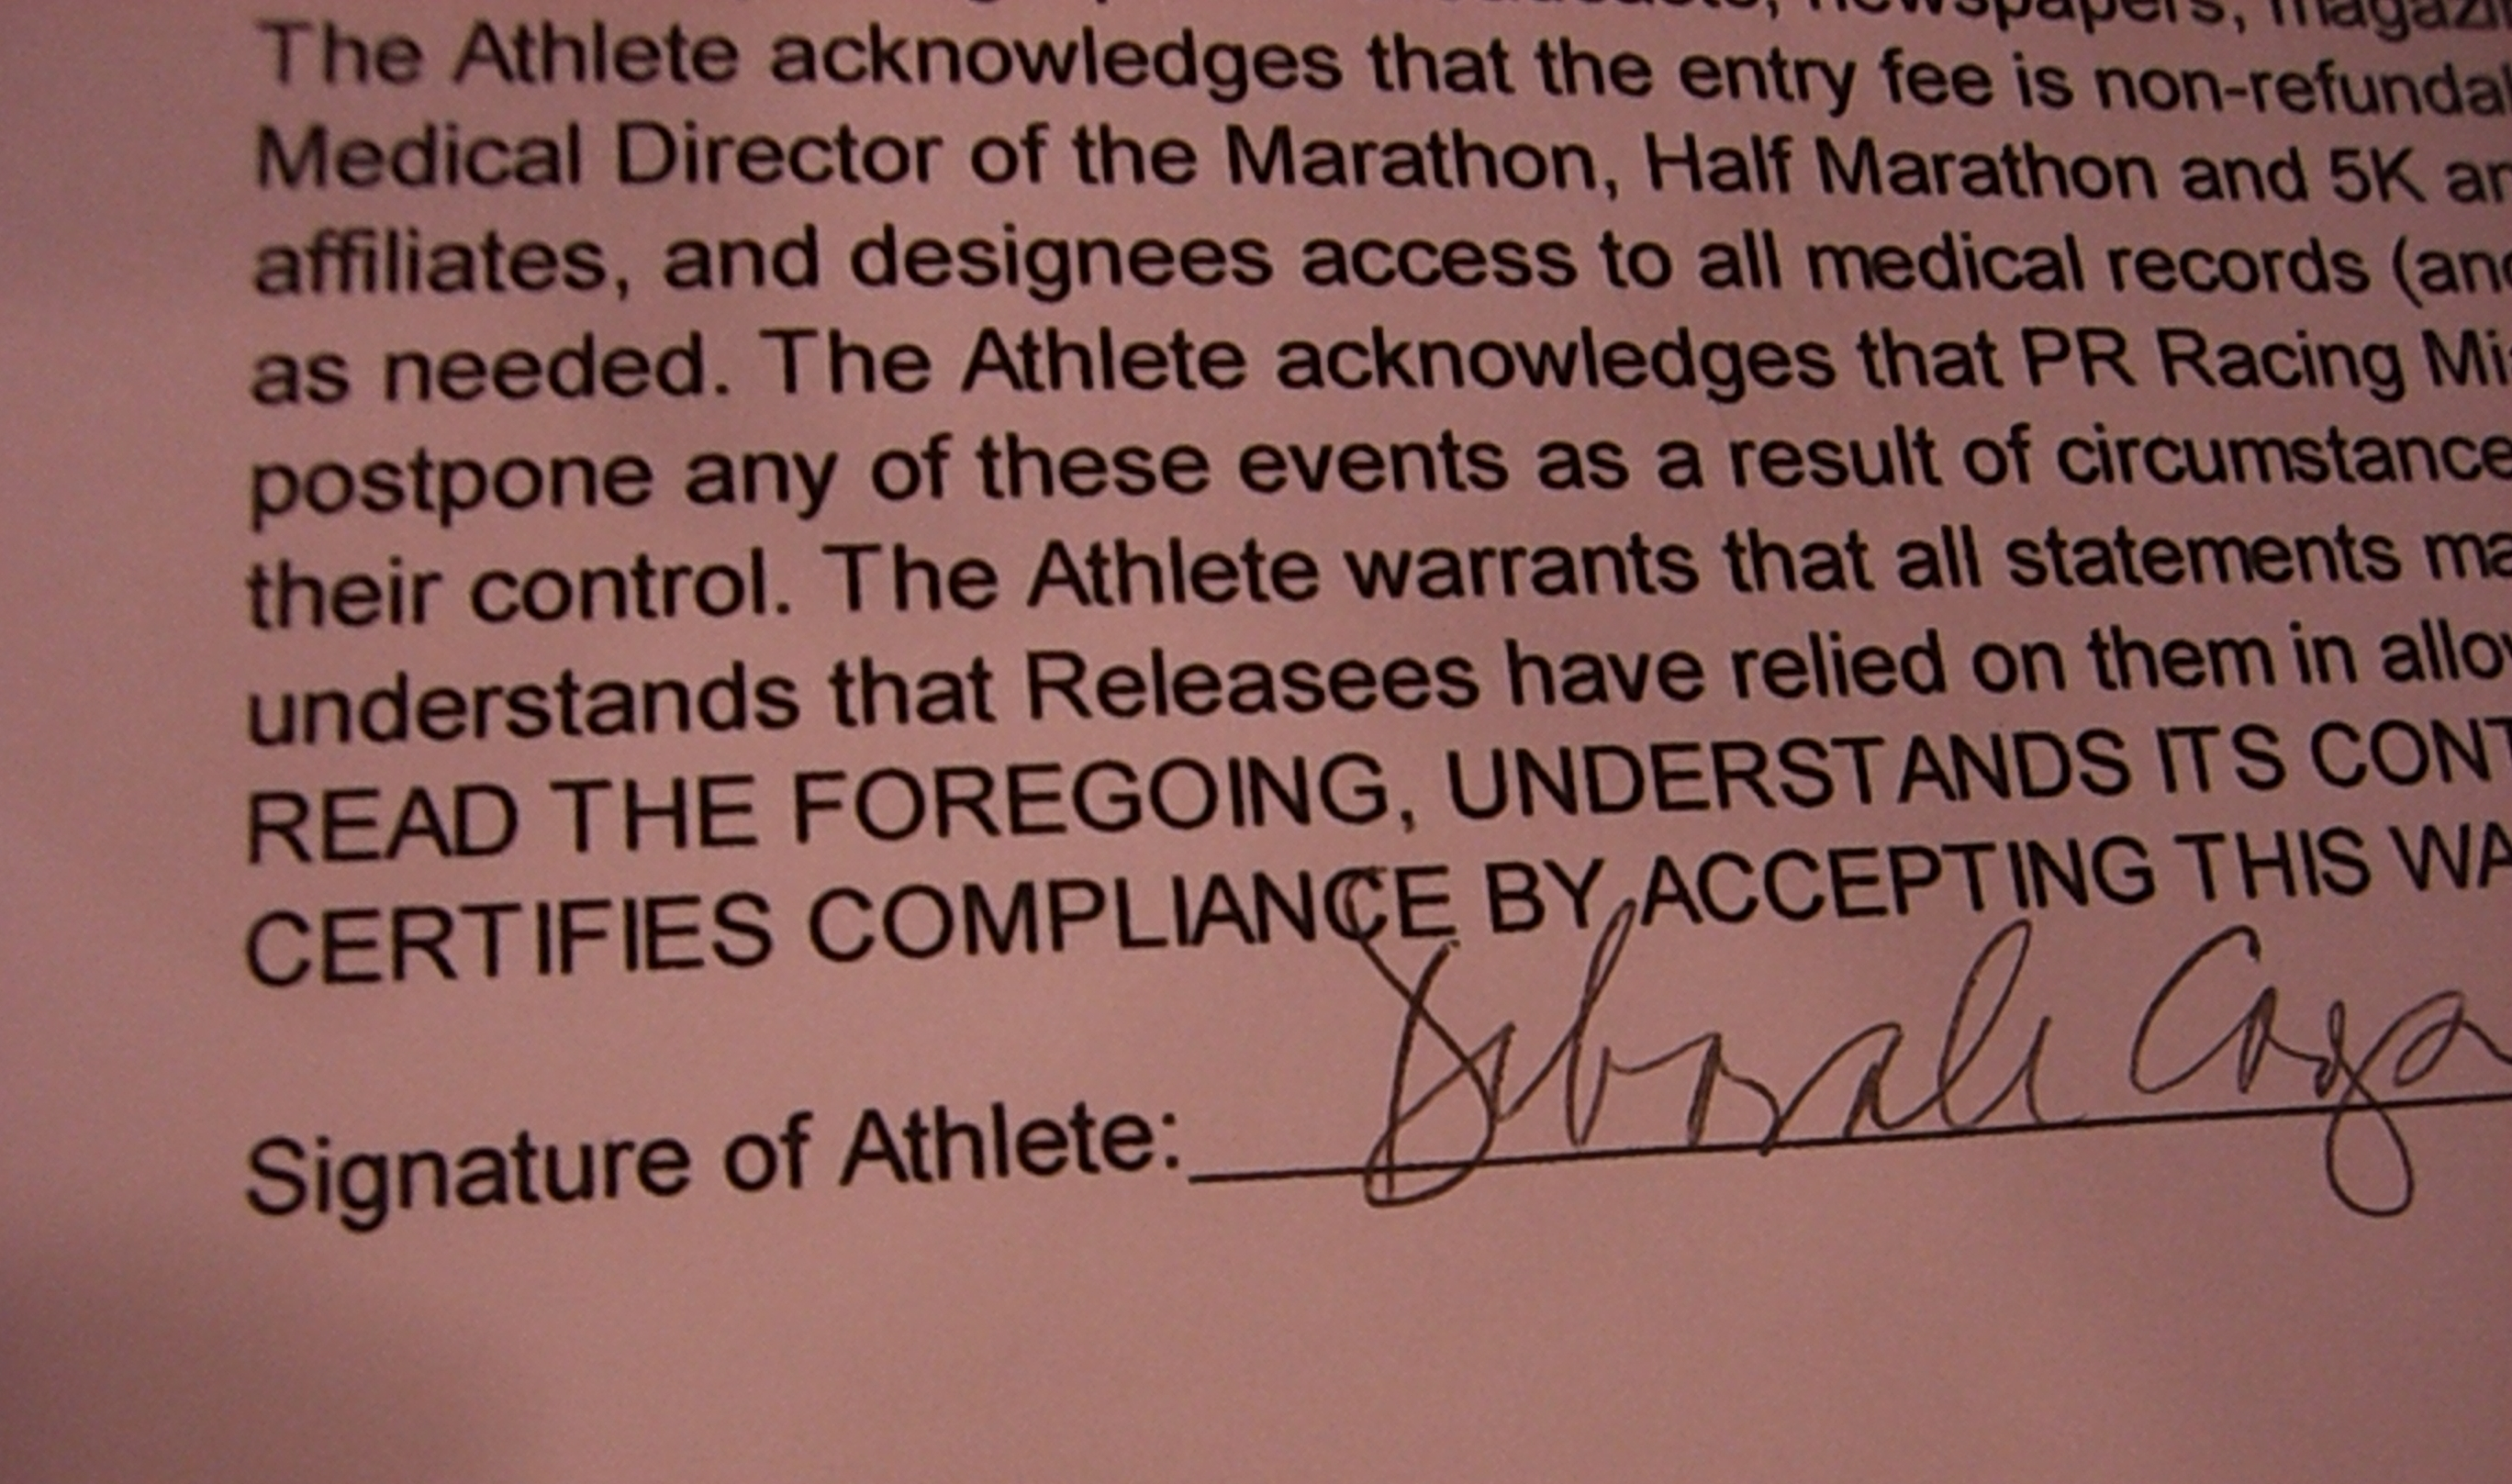 signature of athlete-ish